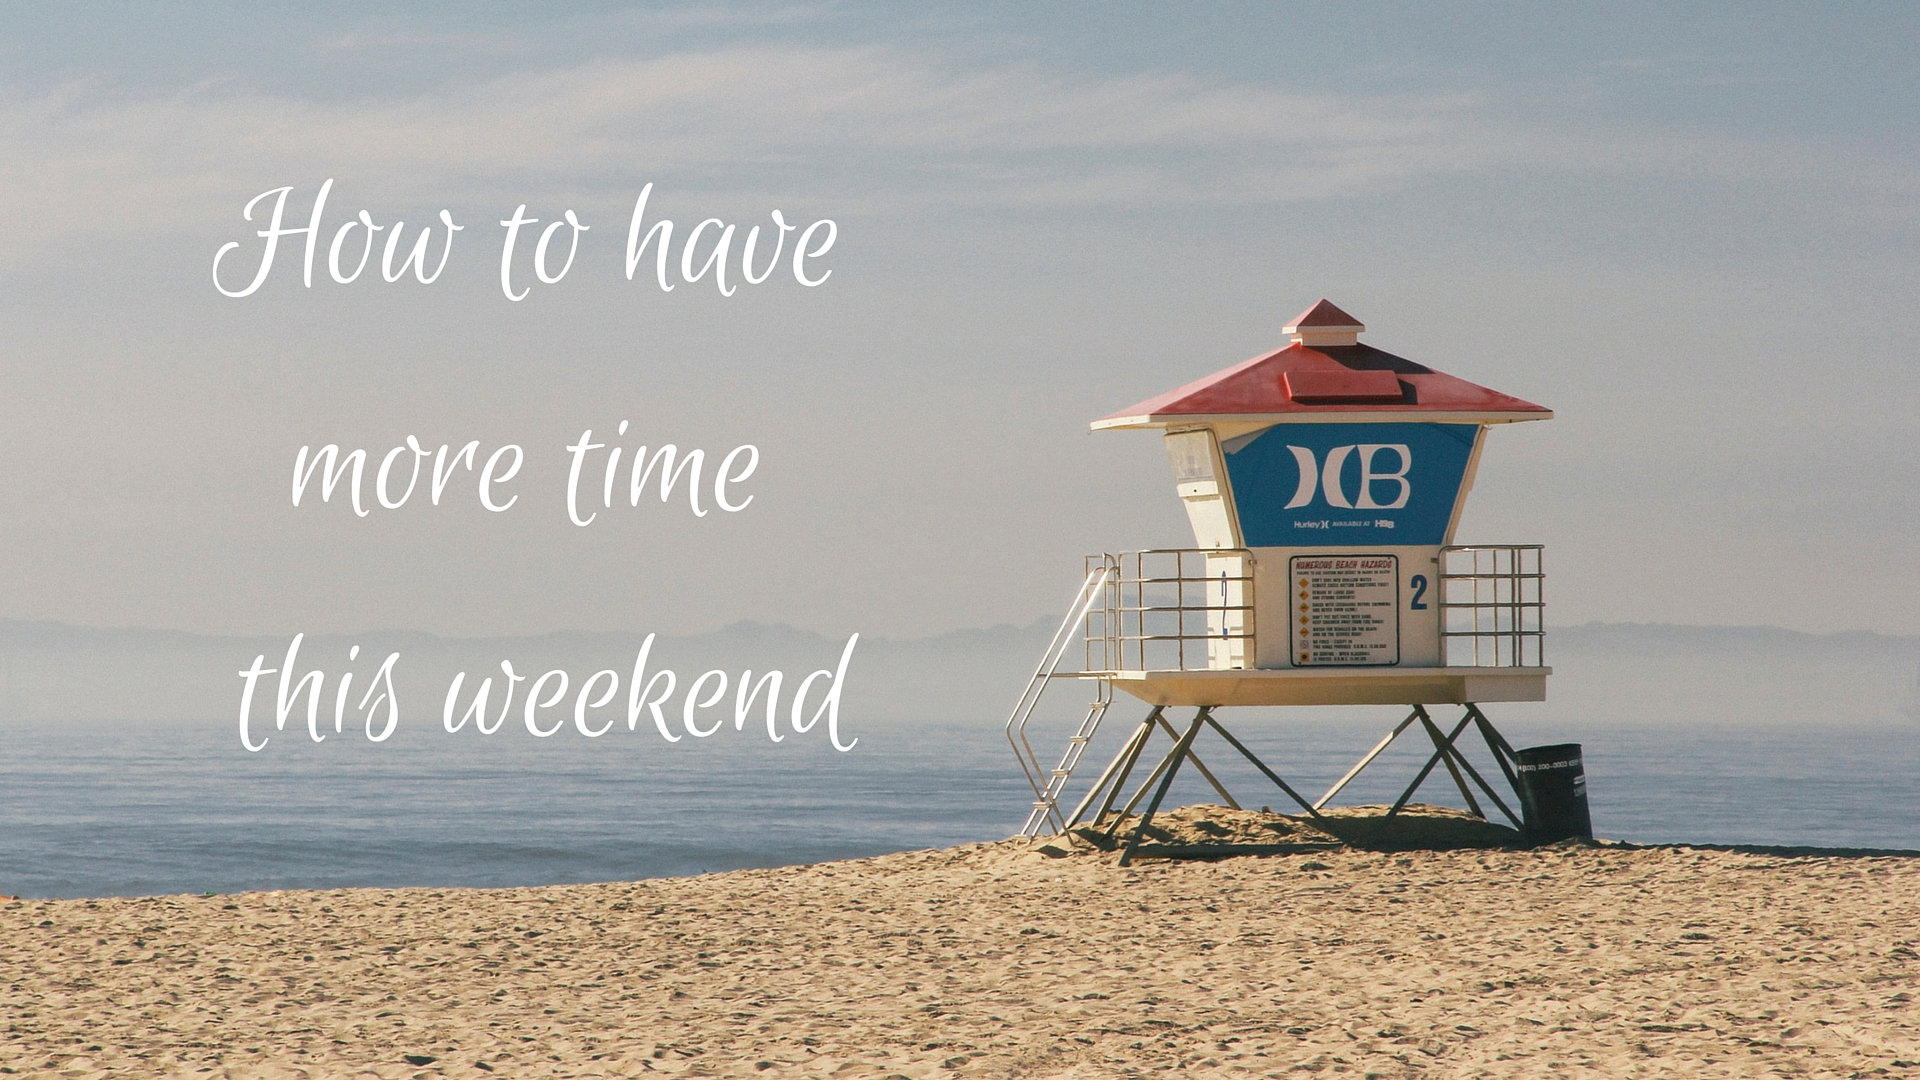 How to have more time this weekend